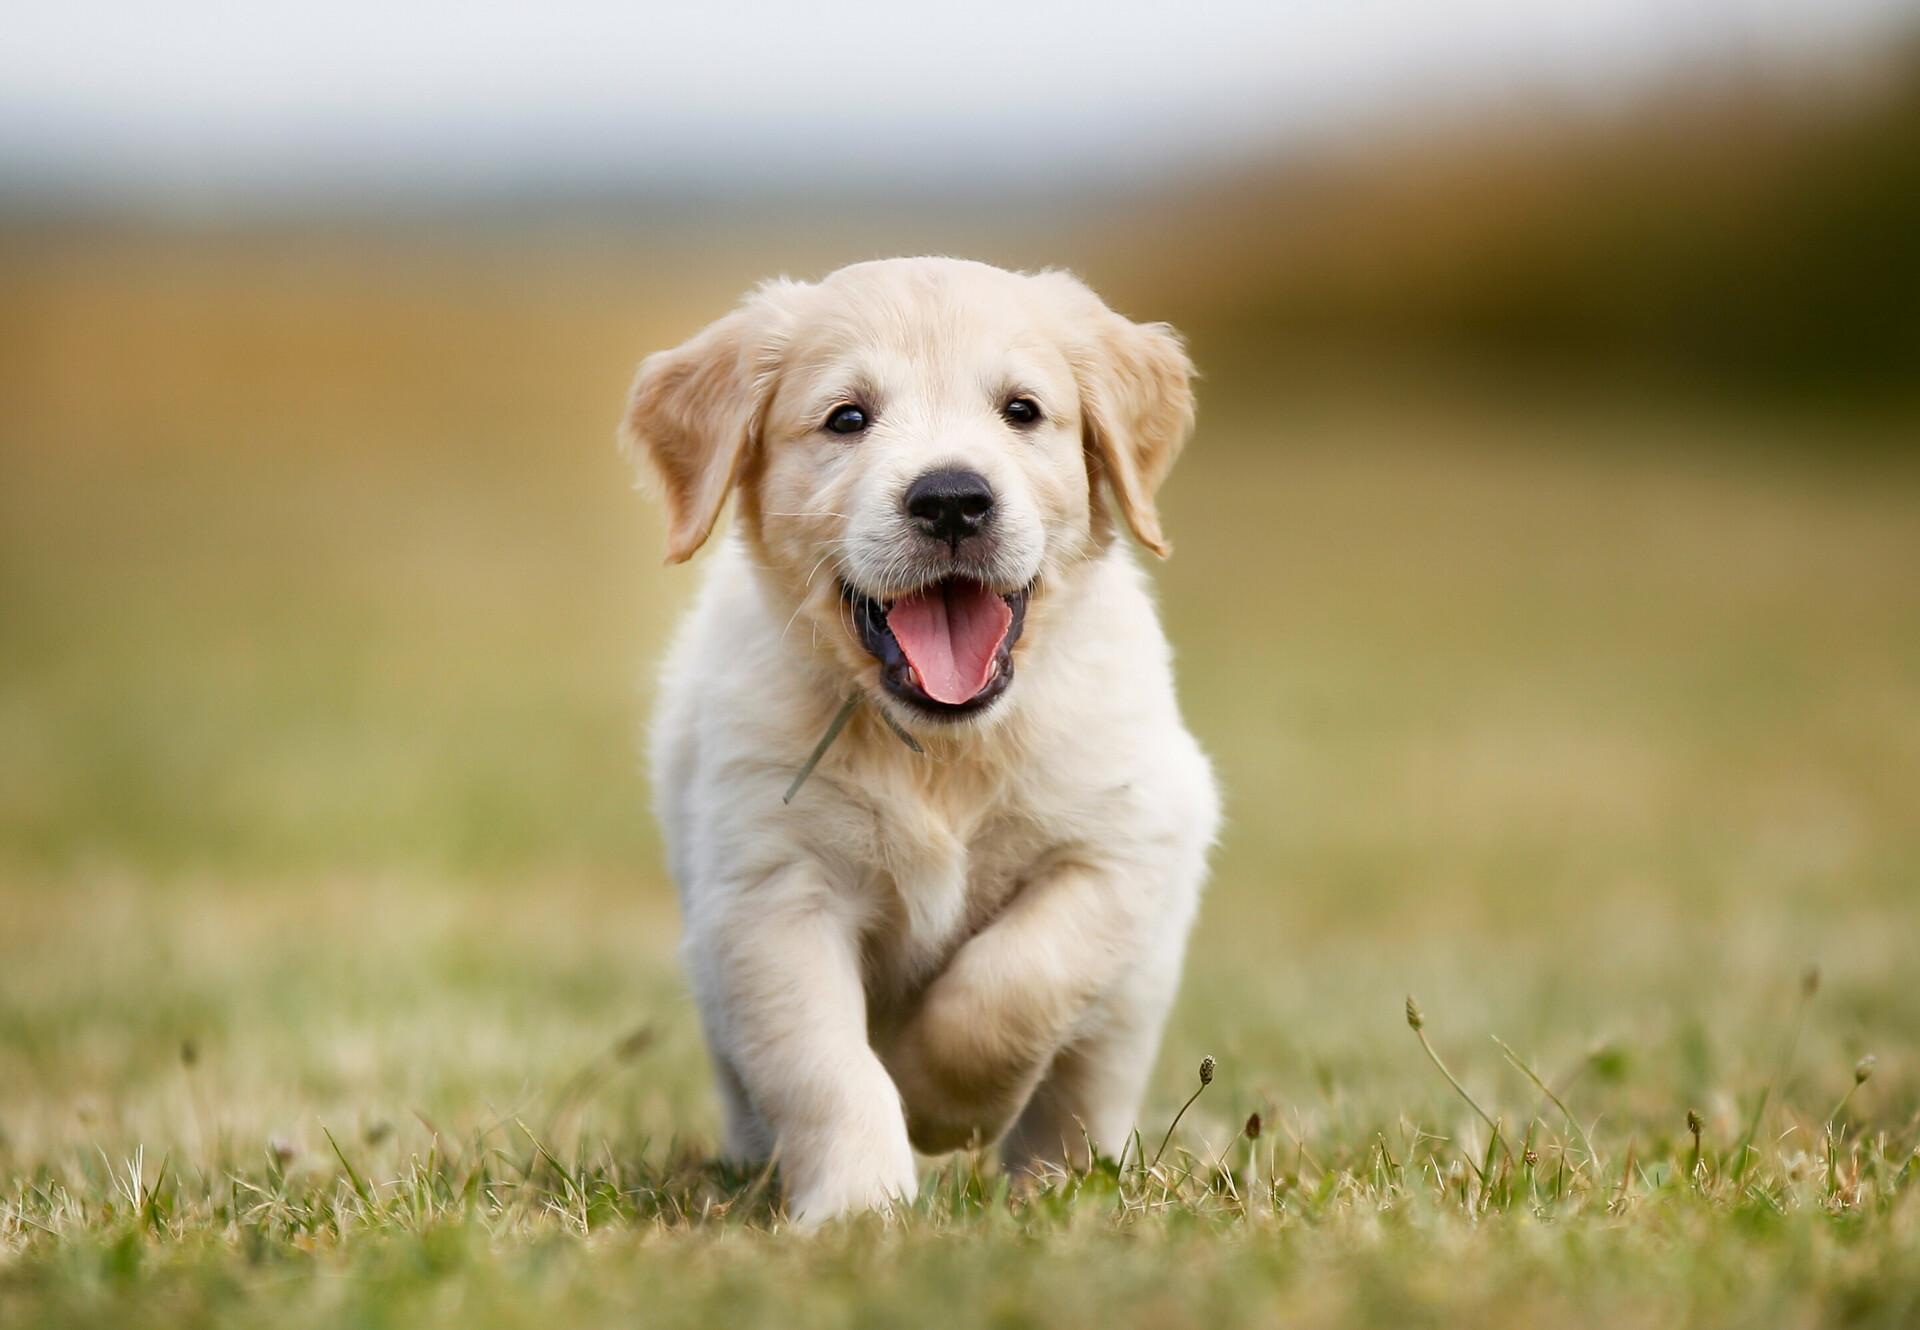 Thinking Of Getting A Puppy? Here Are Some Basics To Learn First